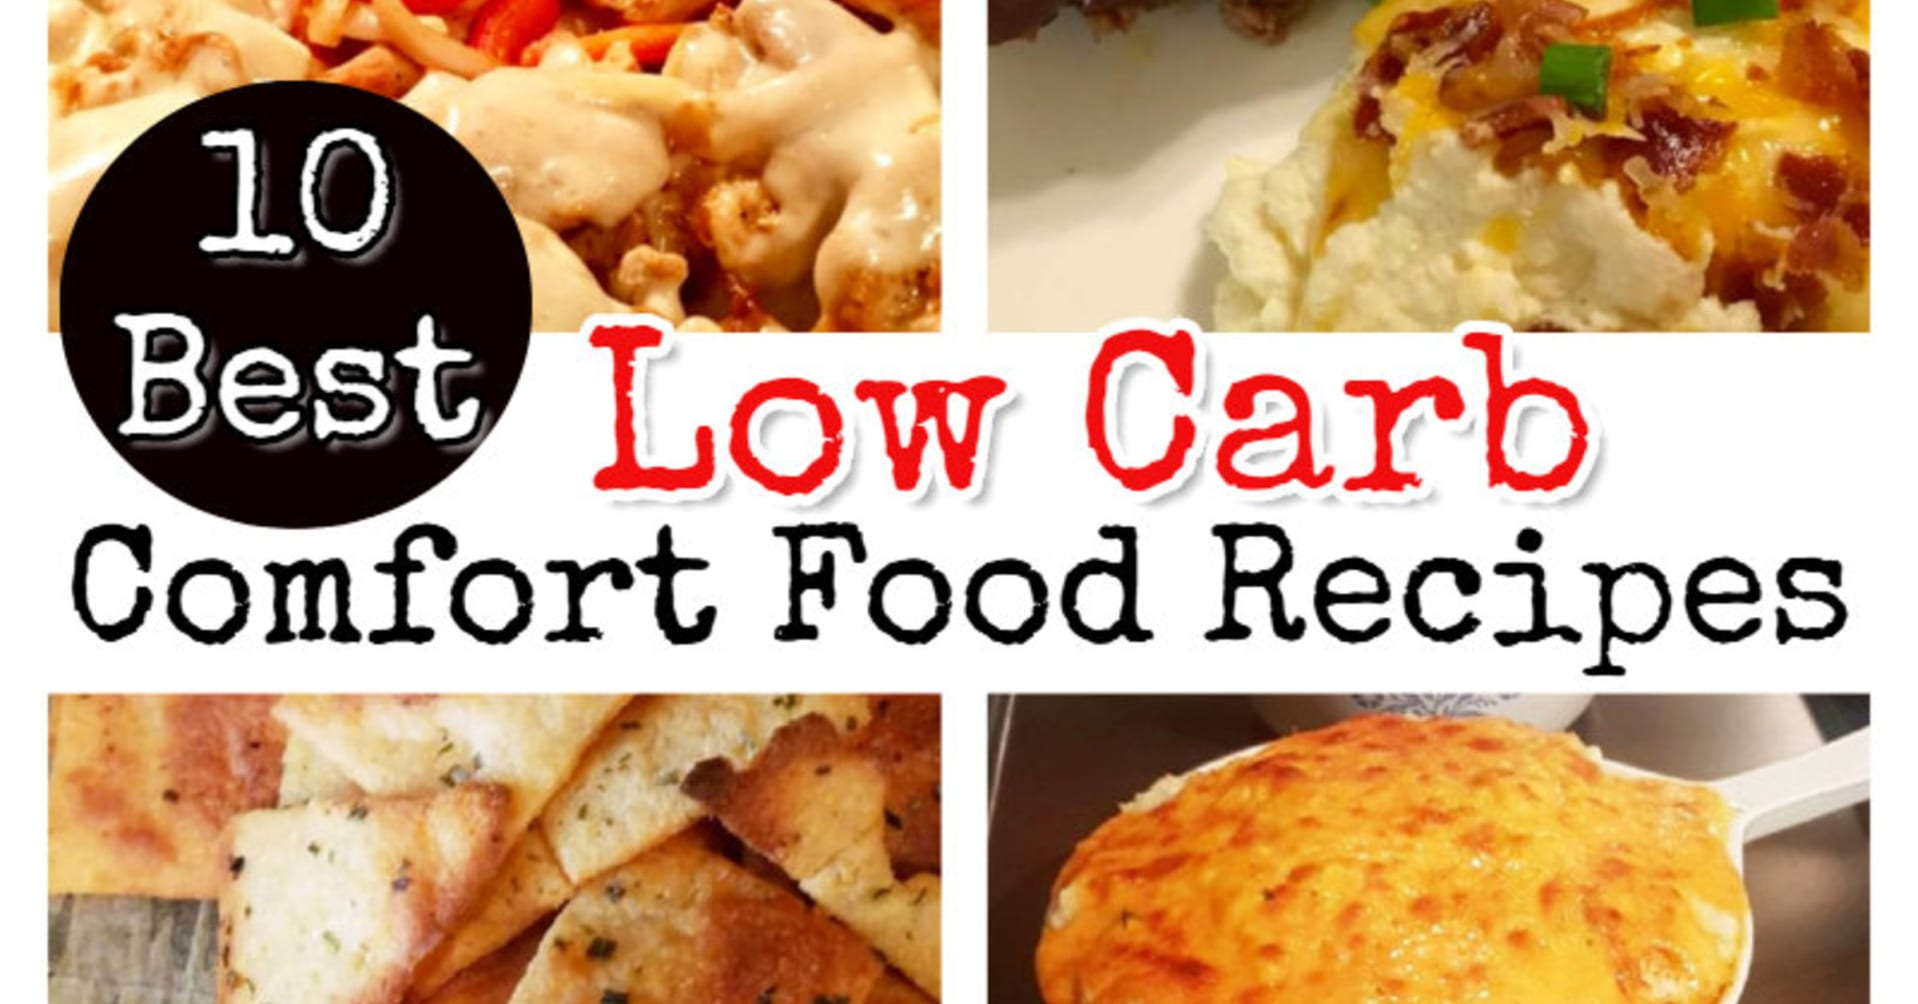 Low carb recipes - easy low carb comfort food recipes